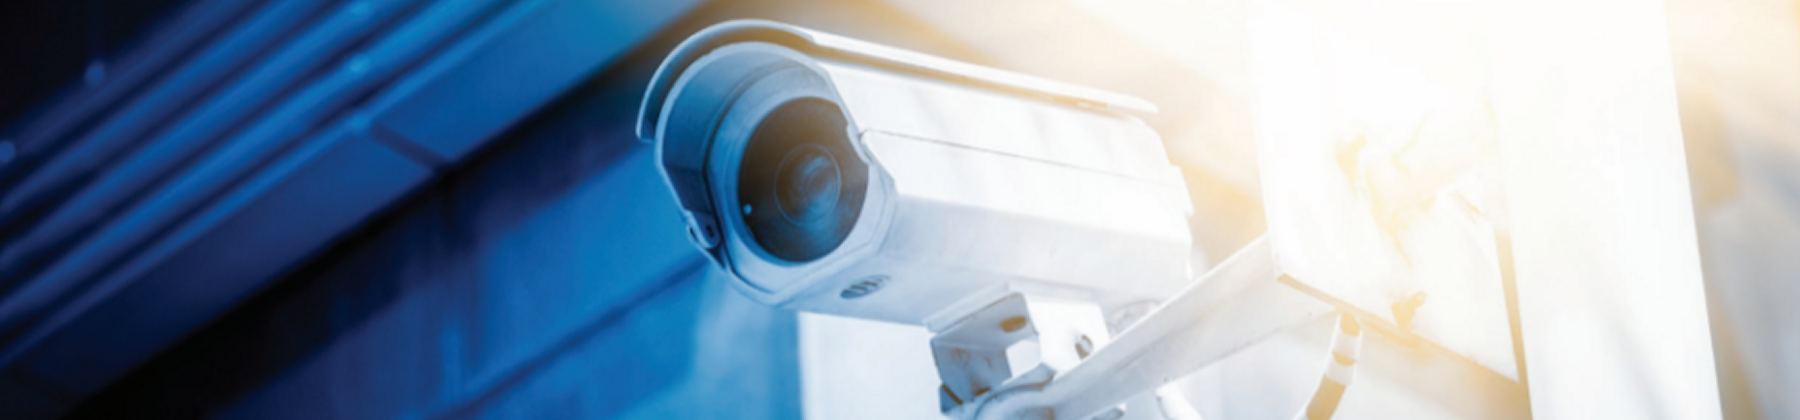 CCTV Router Solution